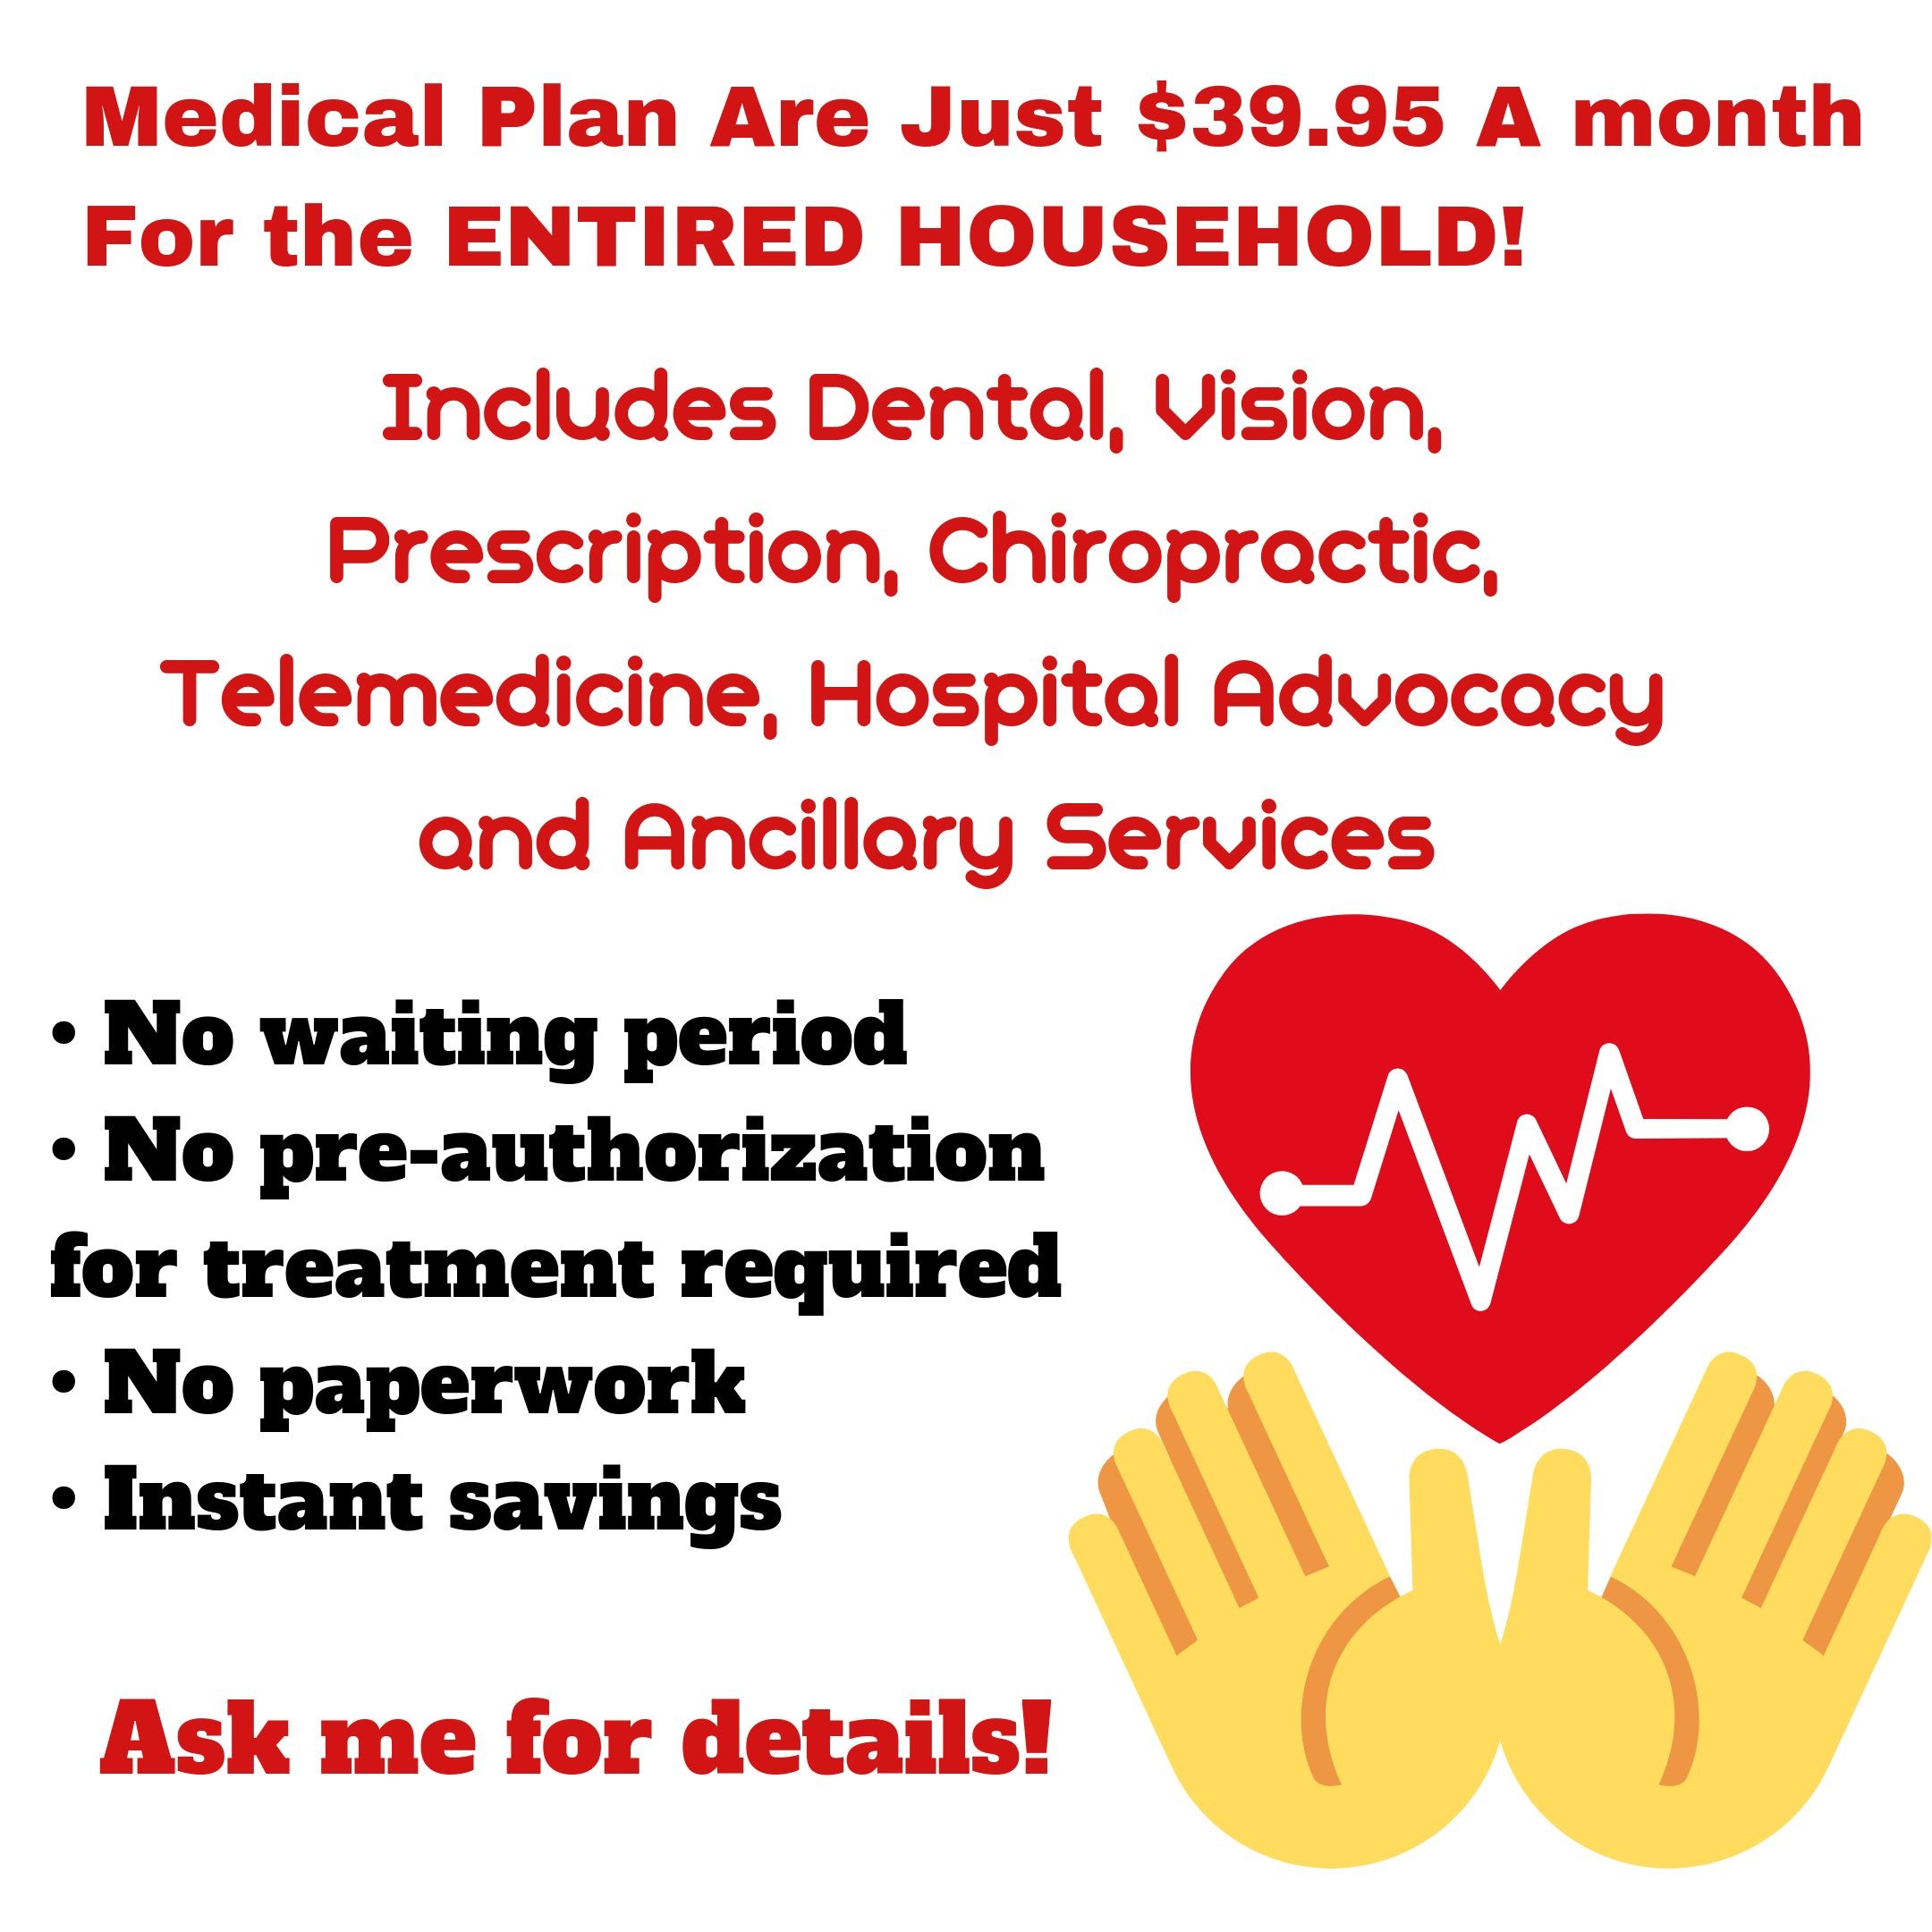 Save up to 80 on Your Families Medical Needs for ONLY 39